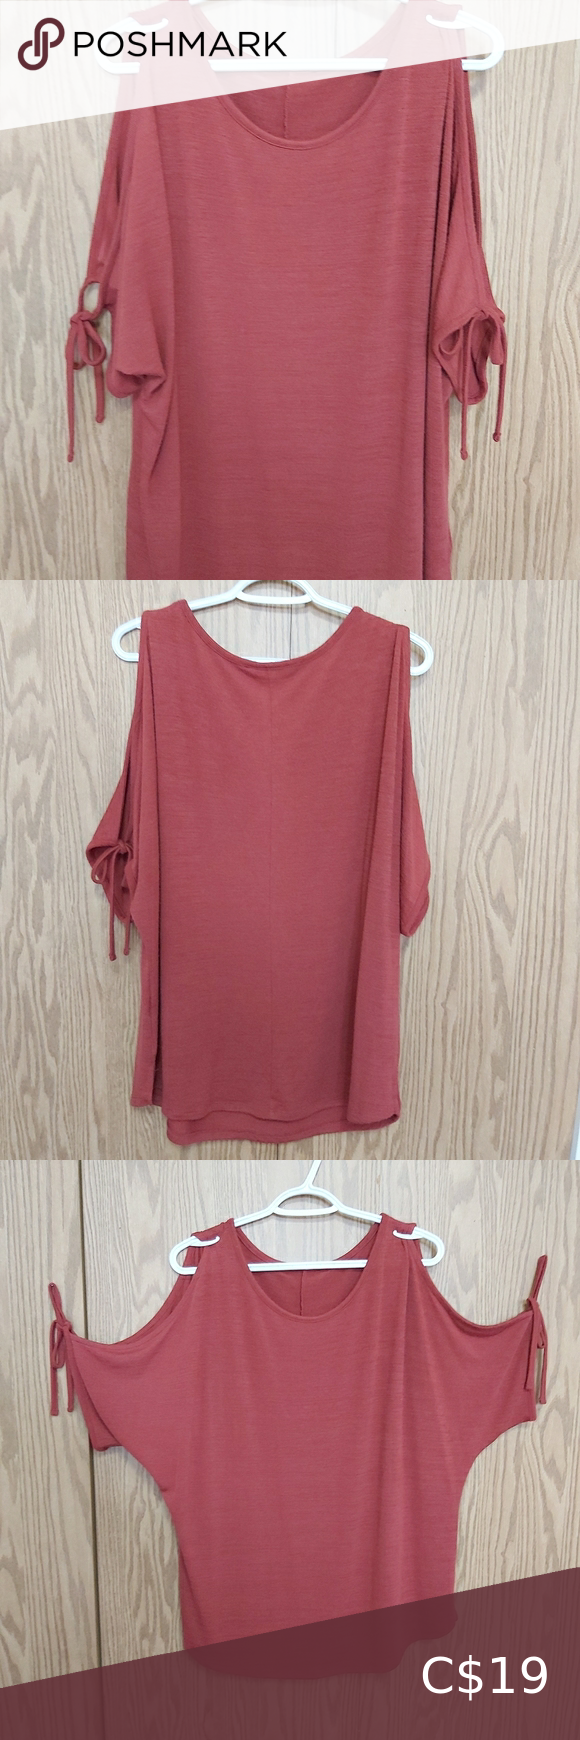 Ladies Sweater Very light weigh sweater. The sleeves add a